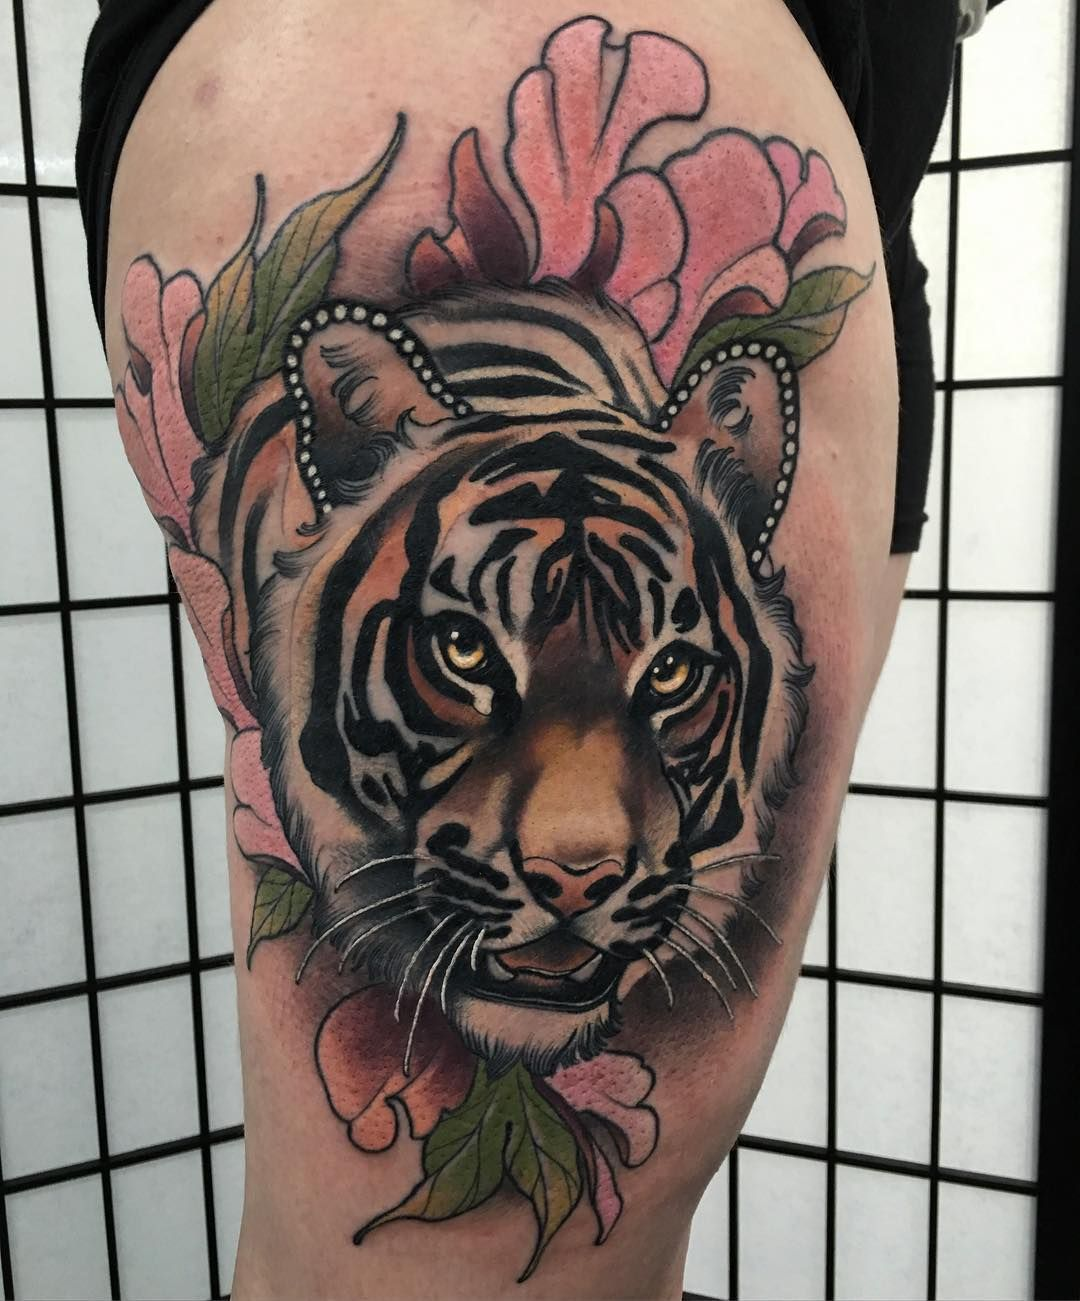 Realism Tattoo Image By Stephanie Kotarba On Tatoos Traditional Tiger Tattoo